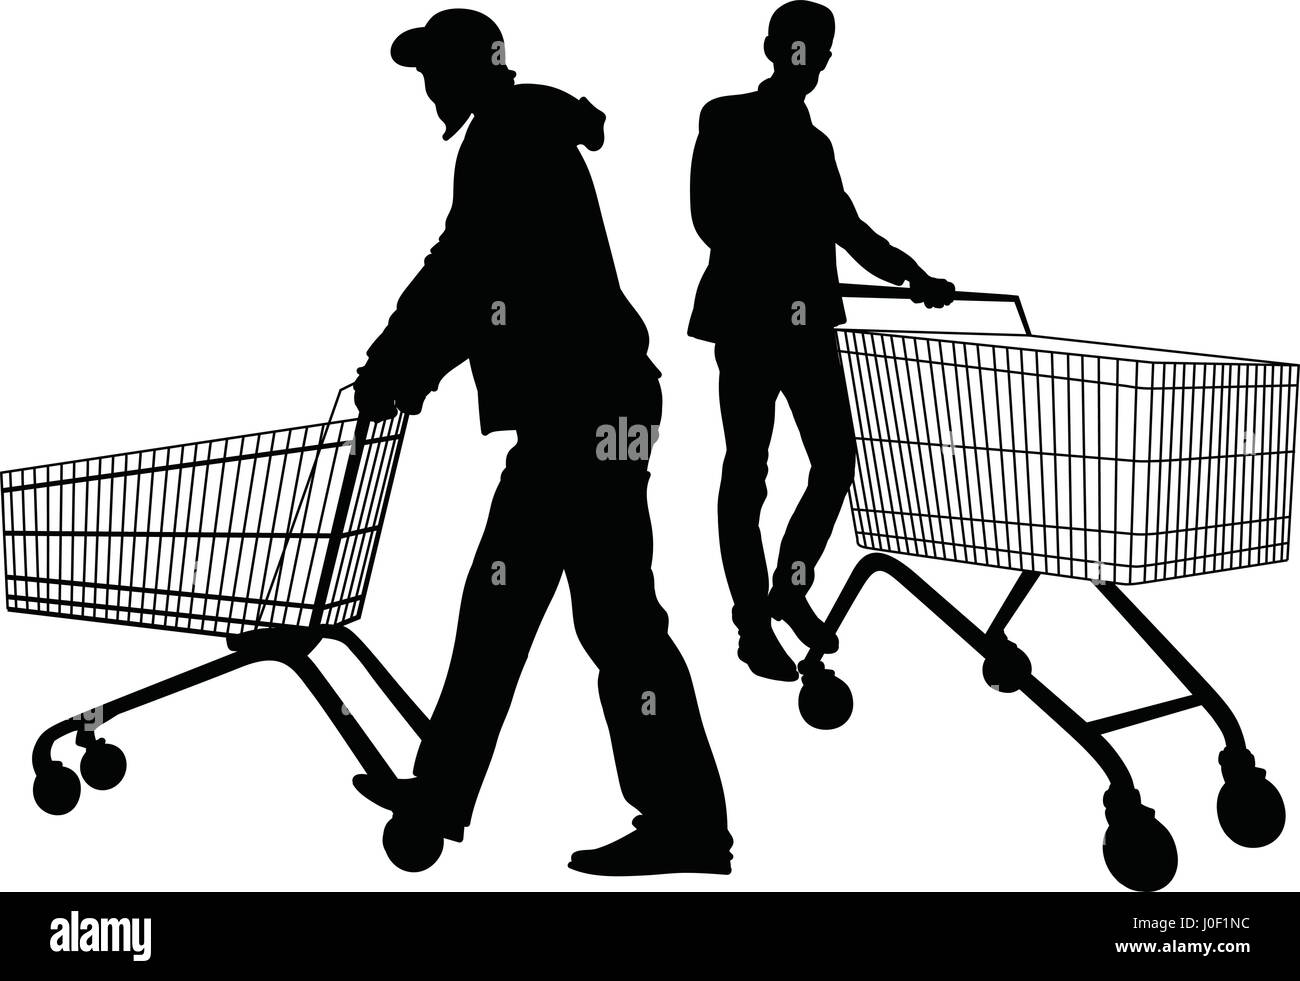 Silhouettes of men with shopping trolleys - Stock Vector